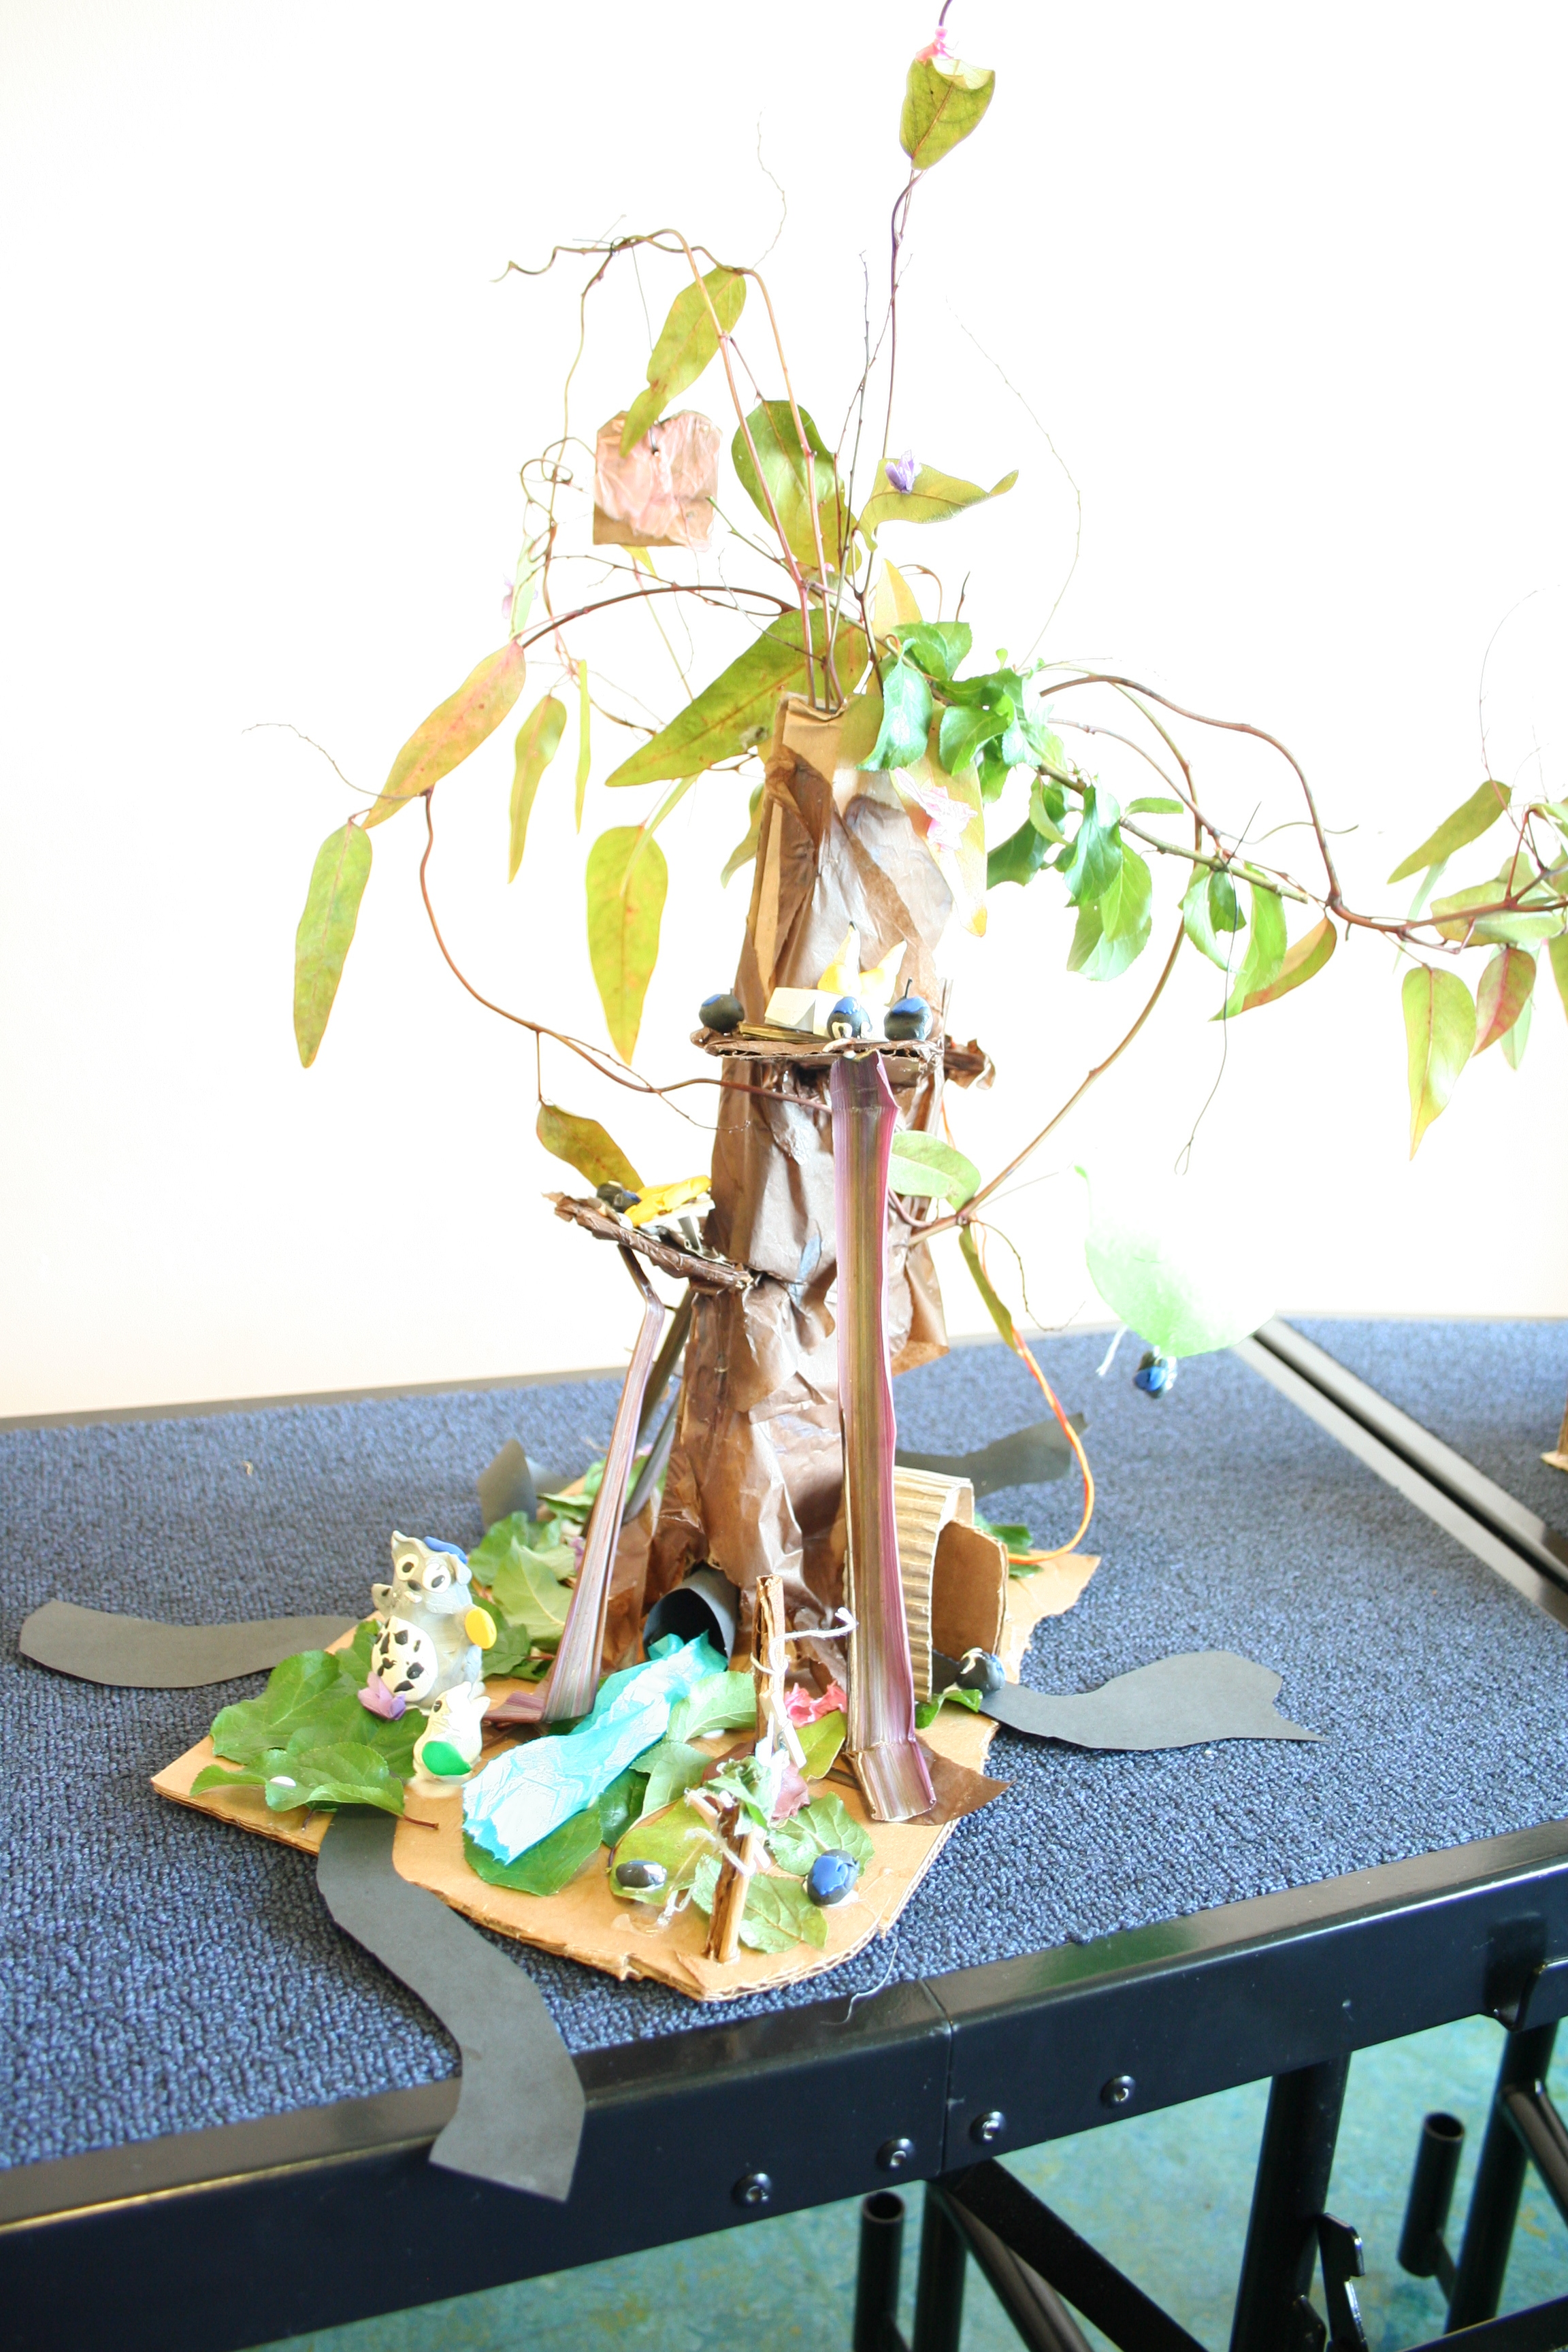 Ruth and Sara: A tree of Torah, with many doorways and access points in. There's even a person parachuting in!